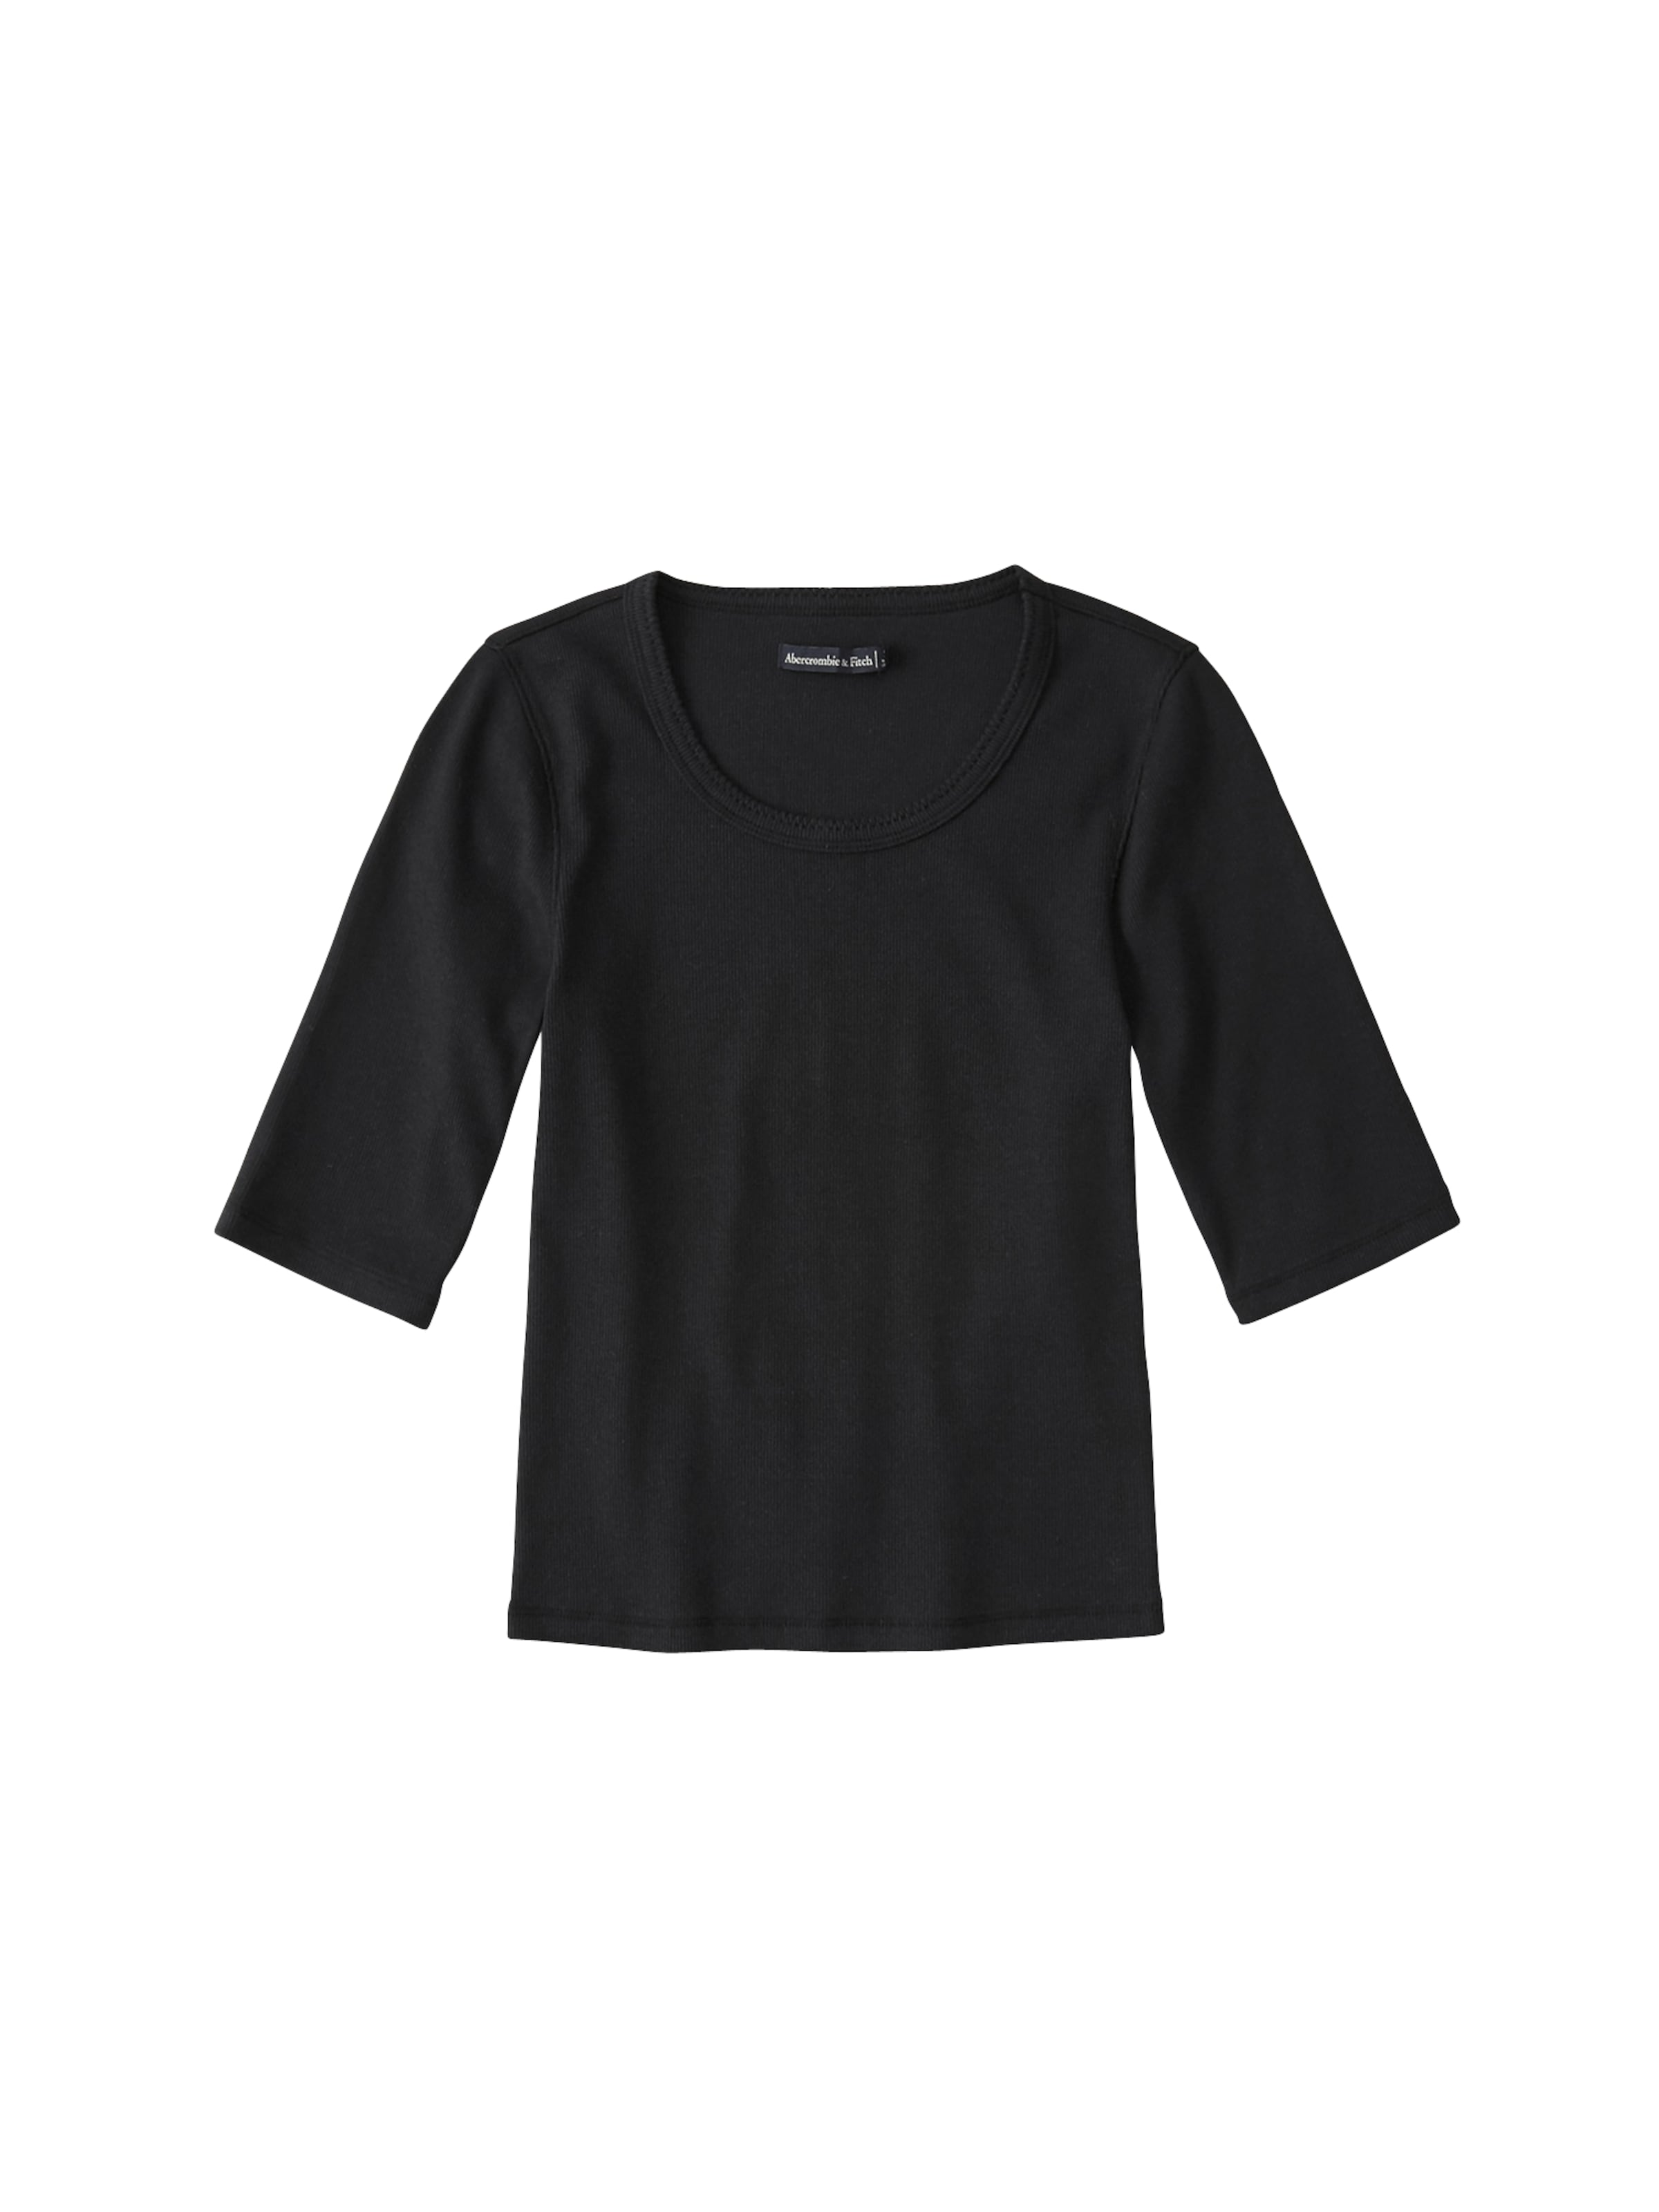 Shirt In Abercrombieamp; Fitch Shirt Abercrombieamp; Fitch Schwarz toQdsxrBhC